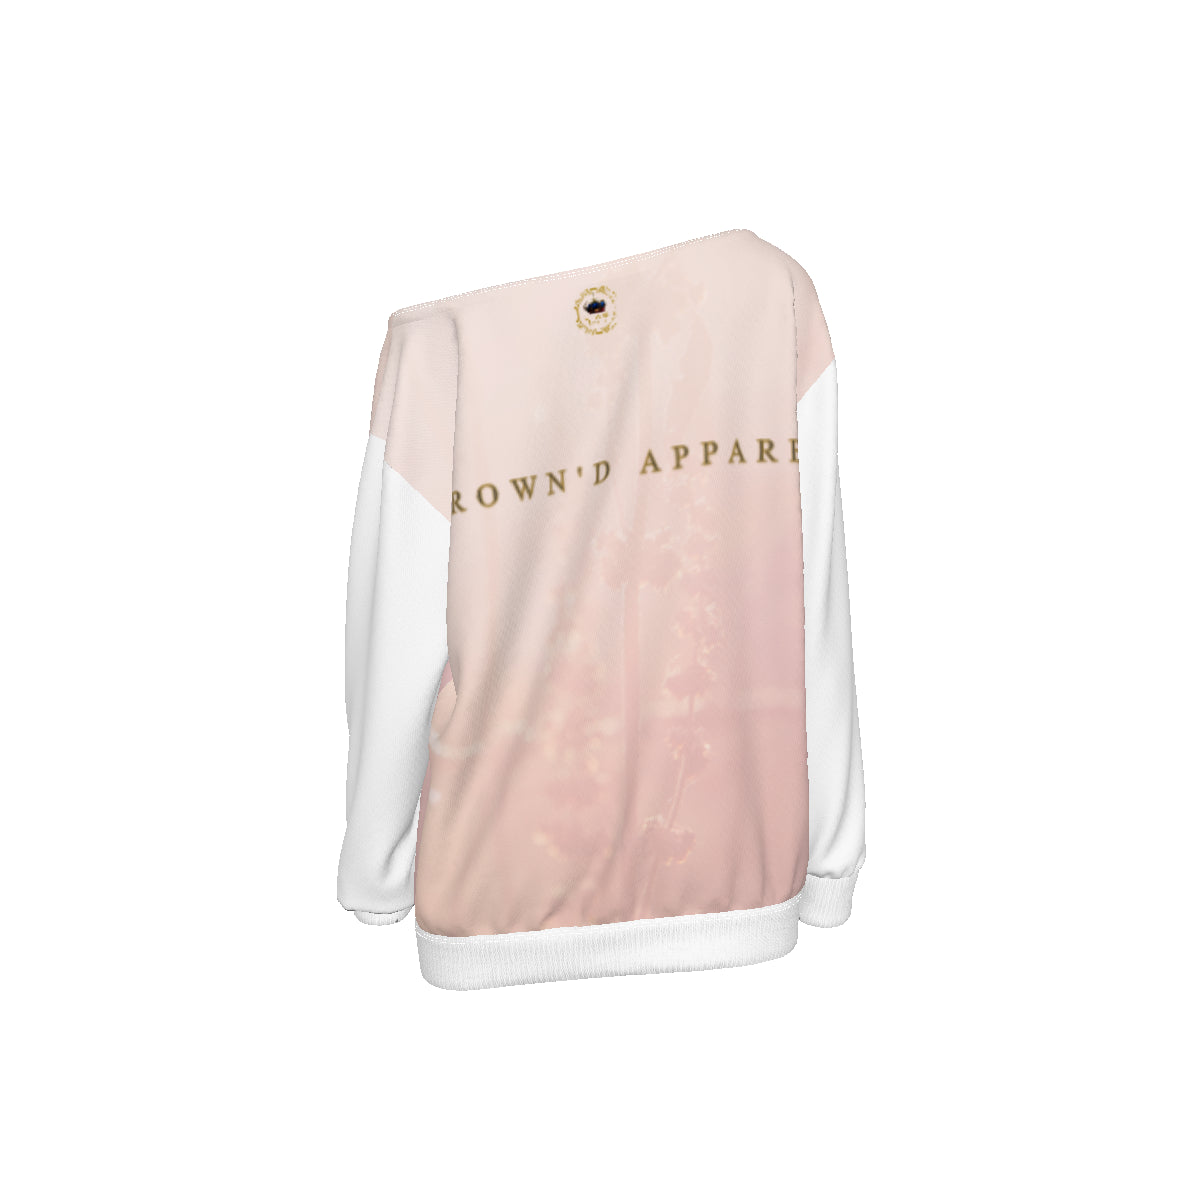 KQROWN'D APPAREL - LOGO EDITION - WOMEN'S OFF SHOULDER SWEATER (PINK FIELD/WHITE)